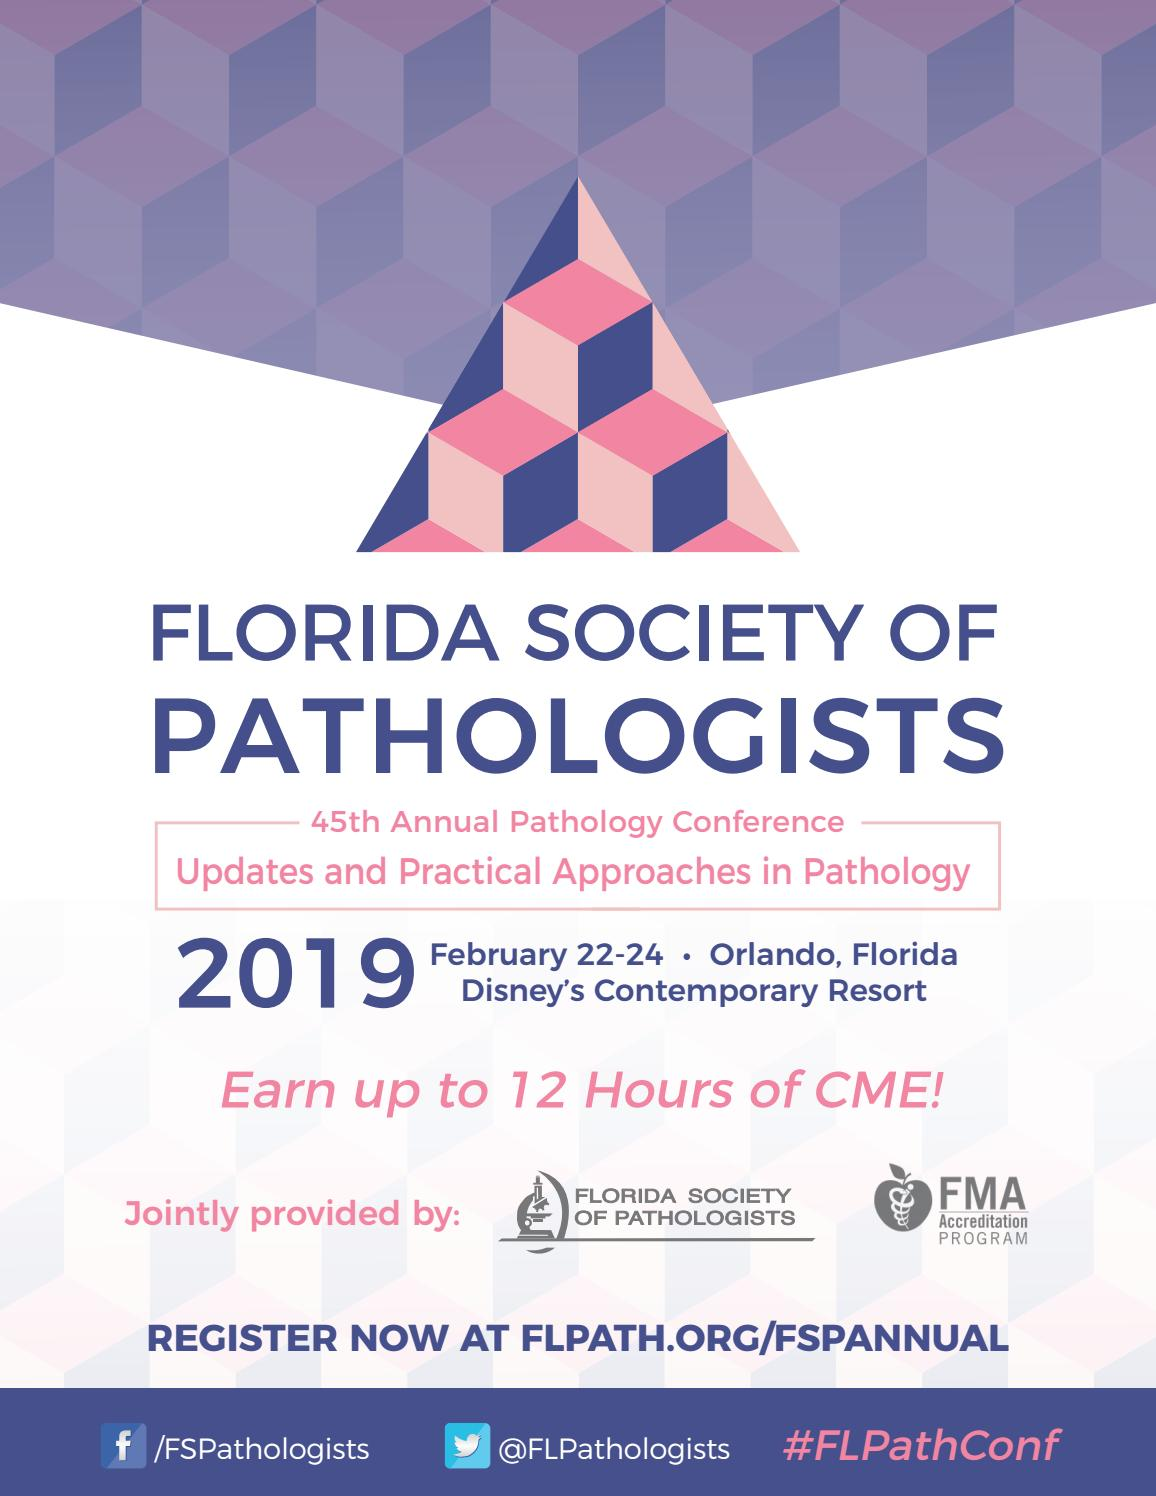 2019 FSP Annual Pathology Conference by Florida Society of